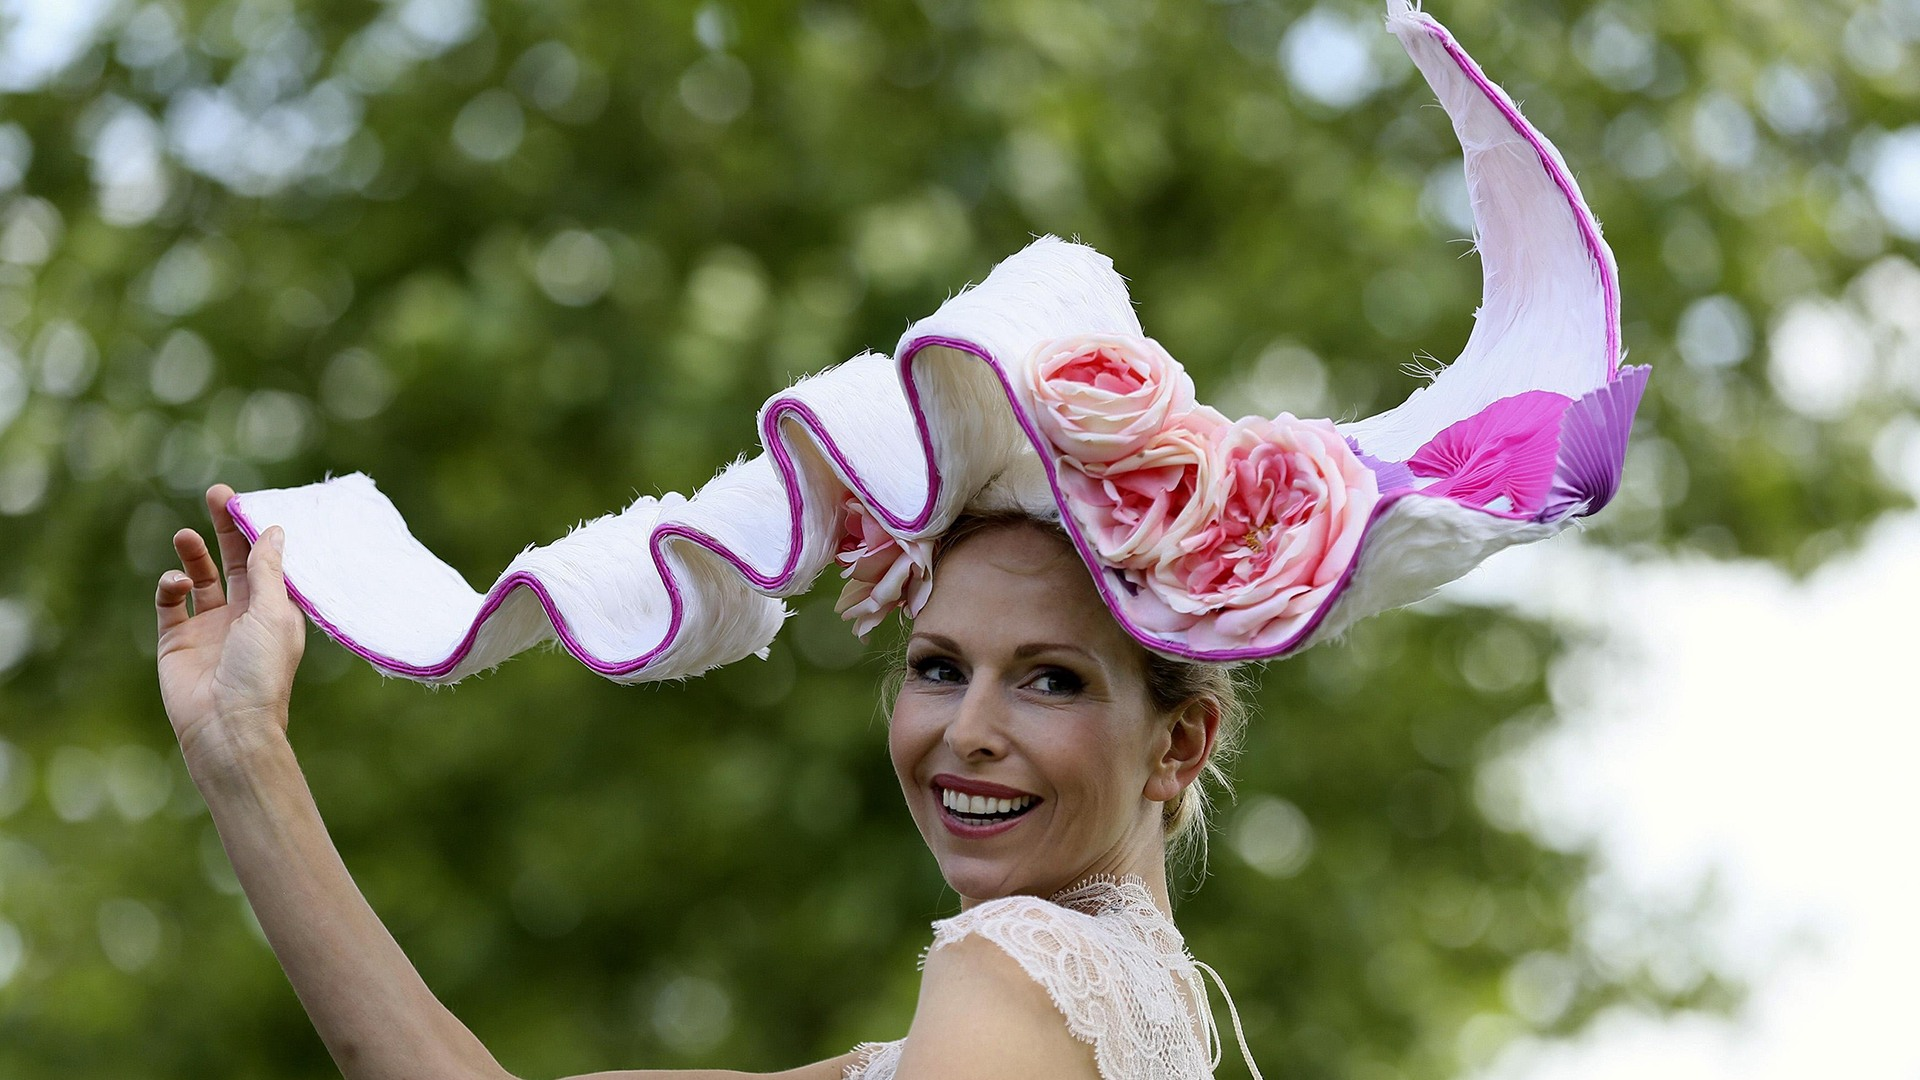 Image: Anneka Tanaka-Svenska poses at the Royal Ascot horse racing festival in Ascot